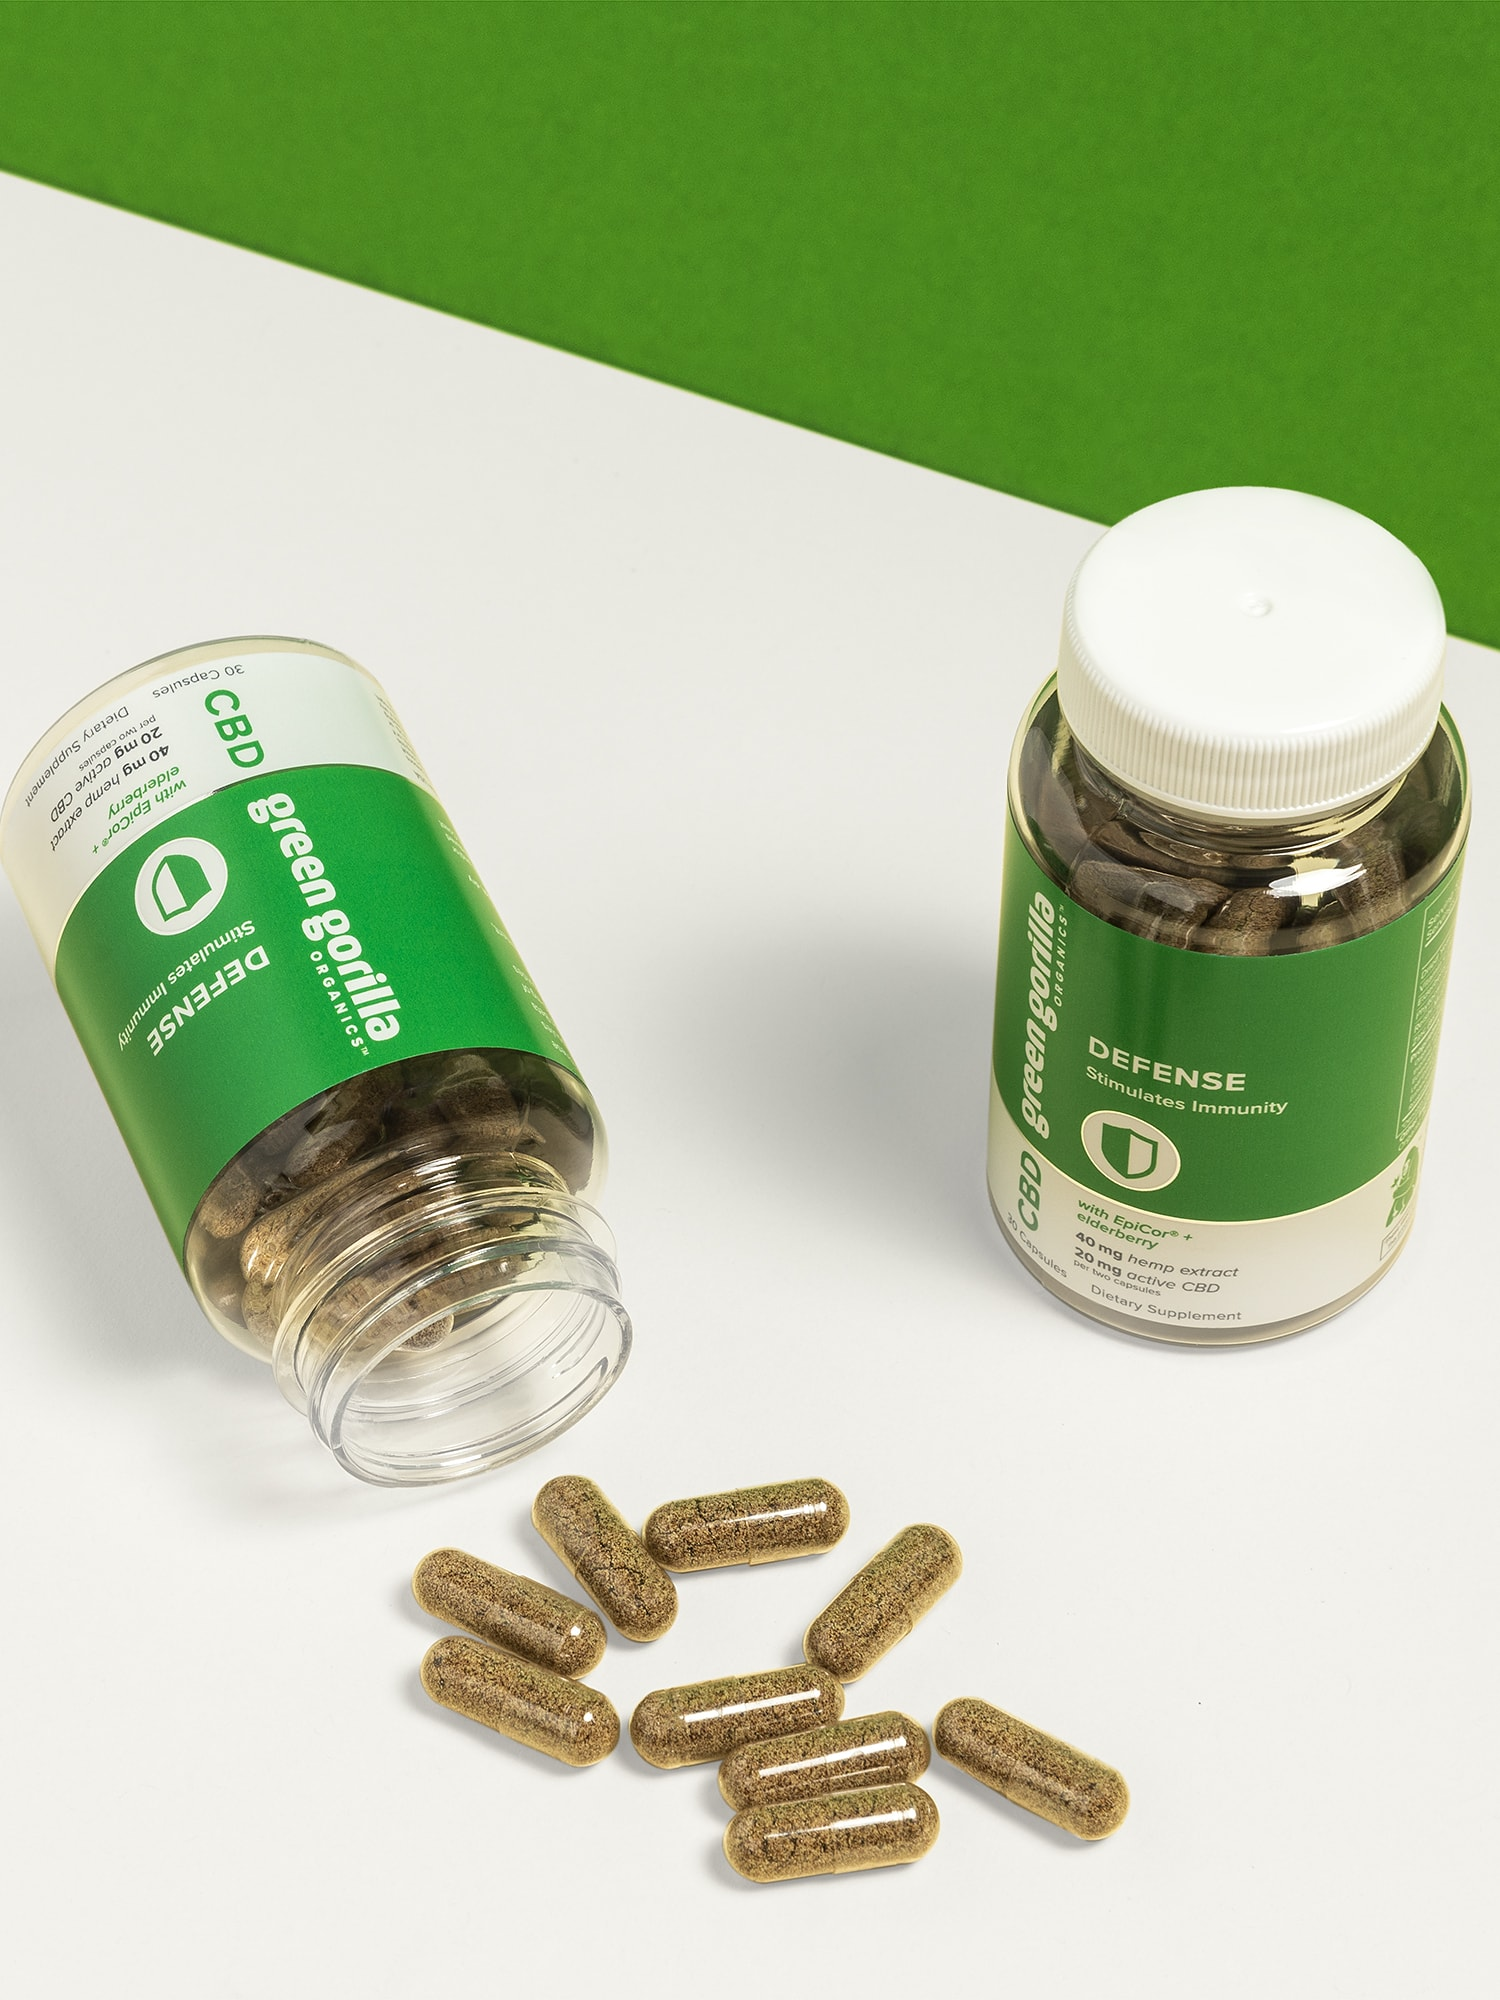 One open and one closed jar of CBD defense capsules with loose capsules